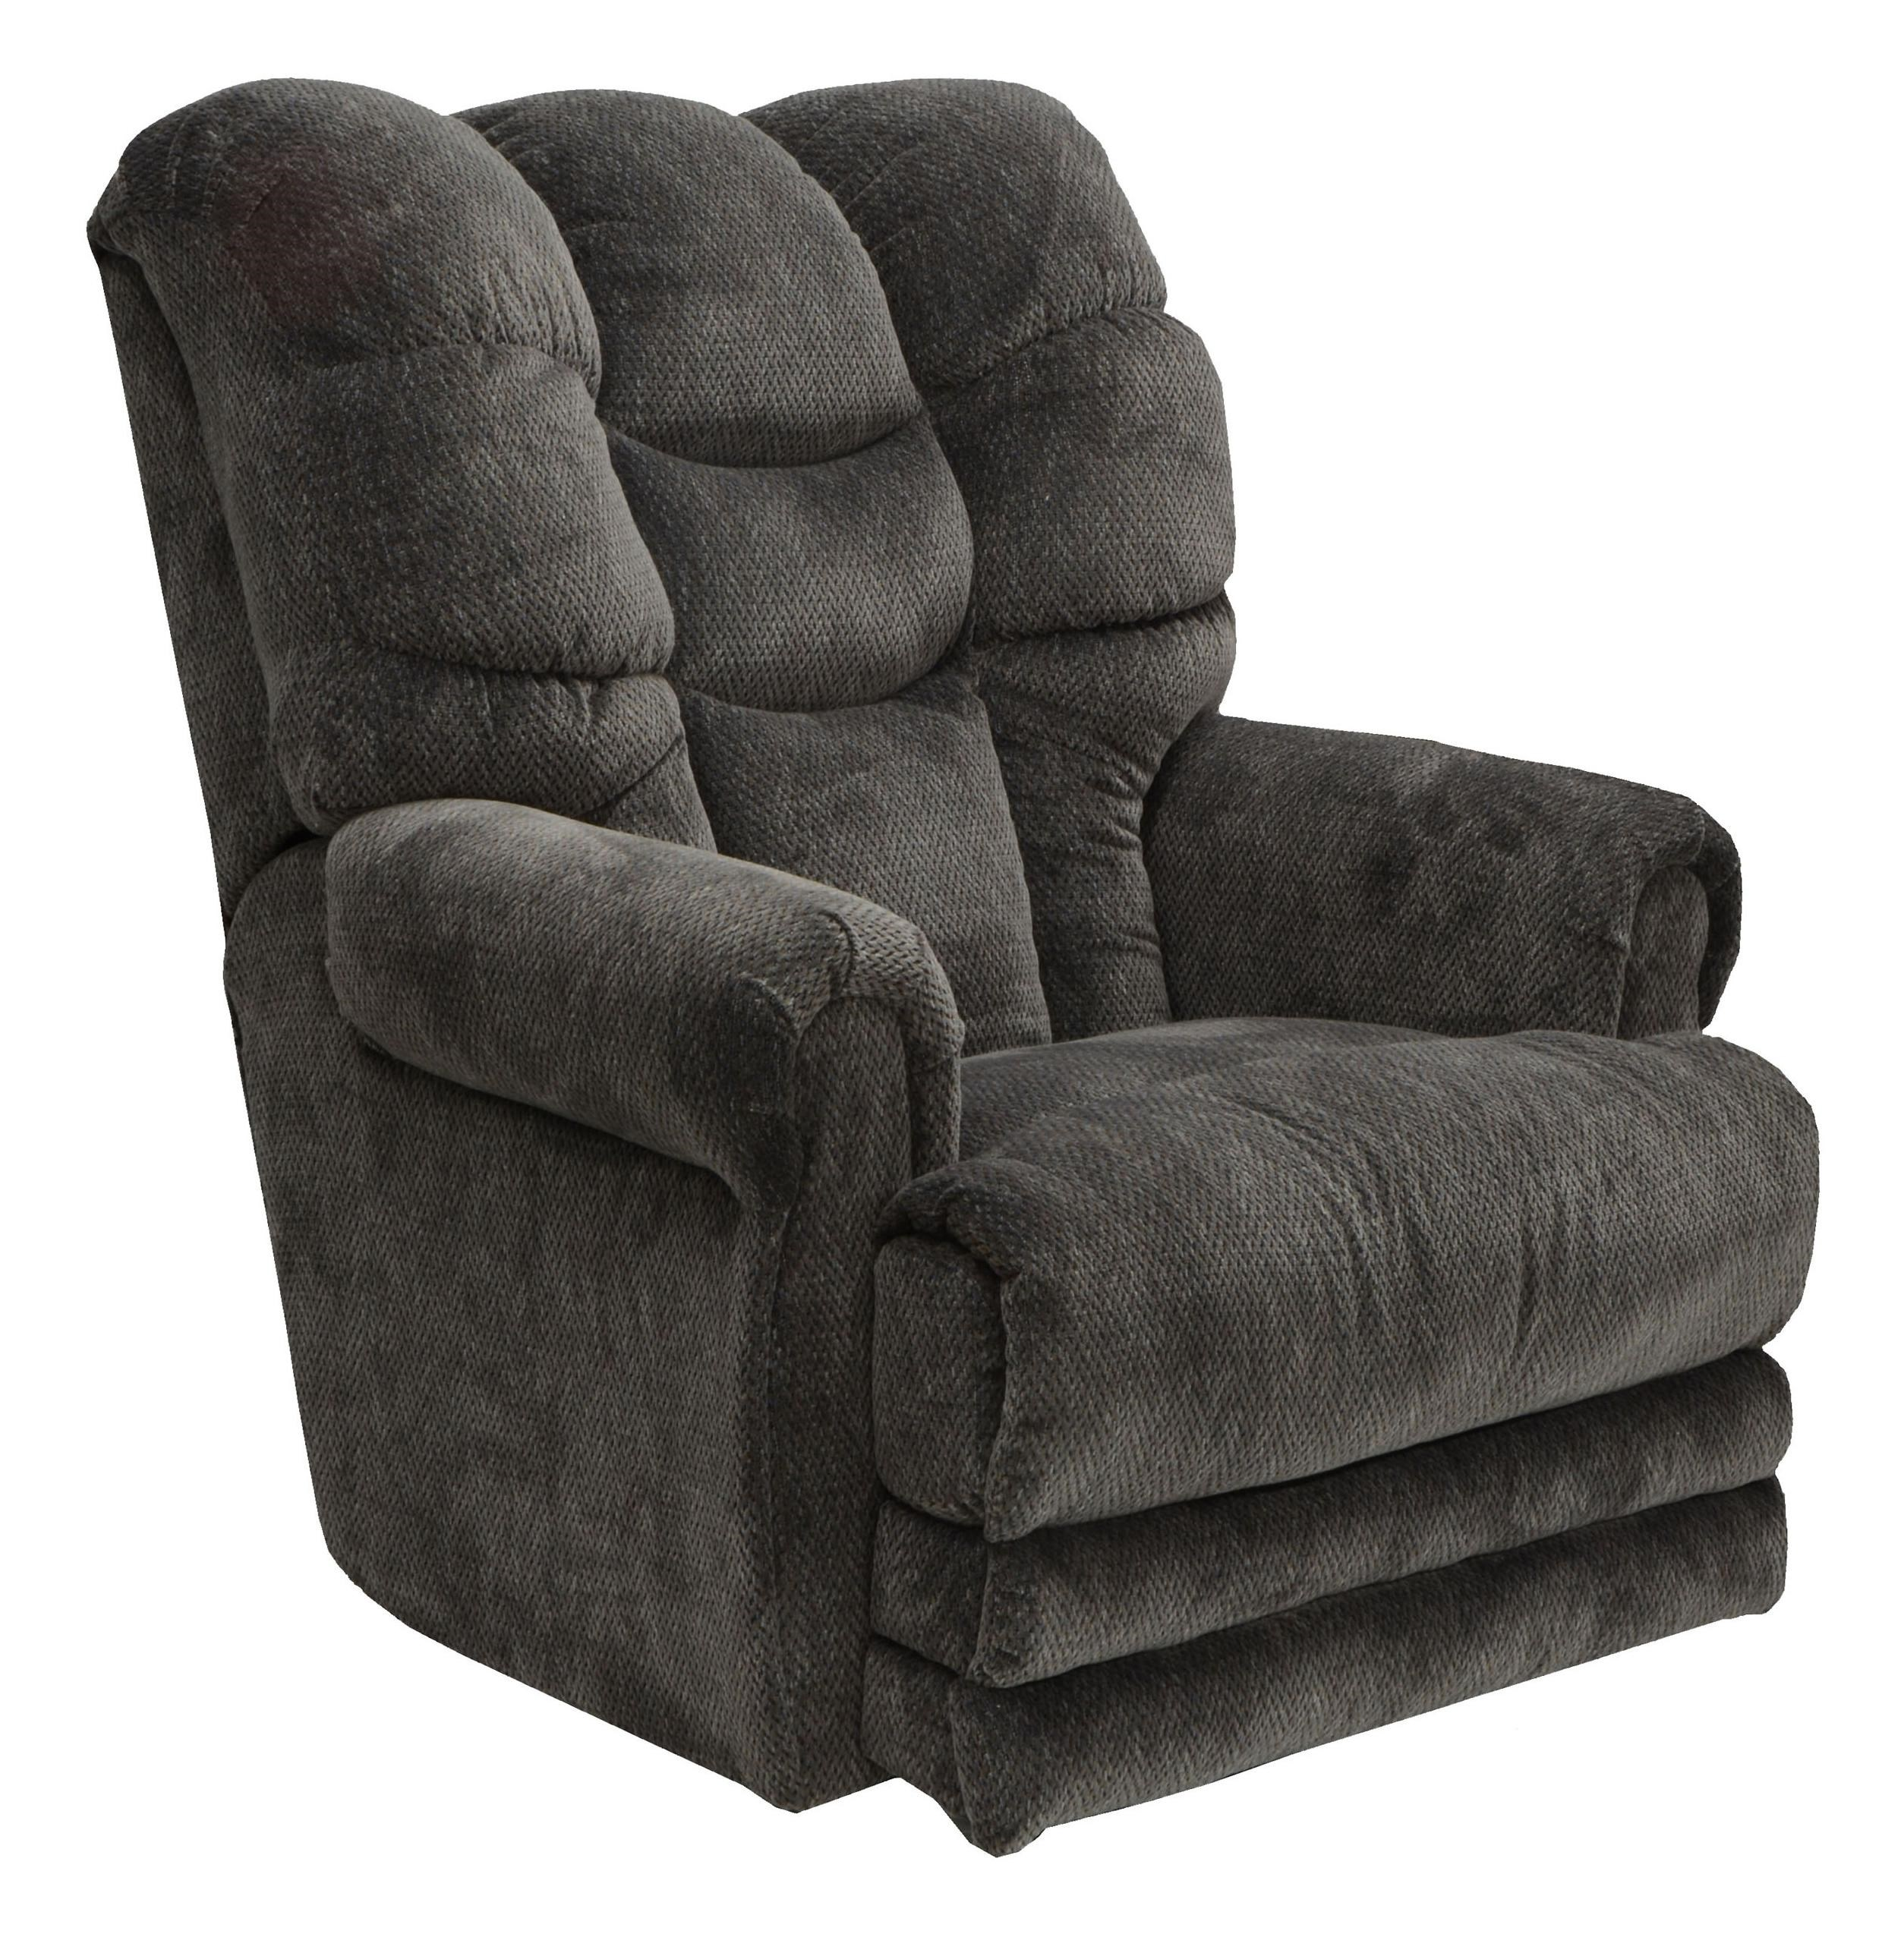 Superieur Catnapper Motion Chairs And ReclinersMalone Power Lay Flat Recliner